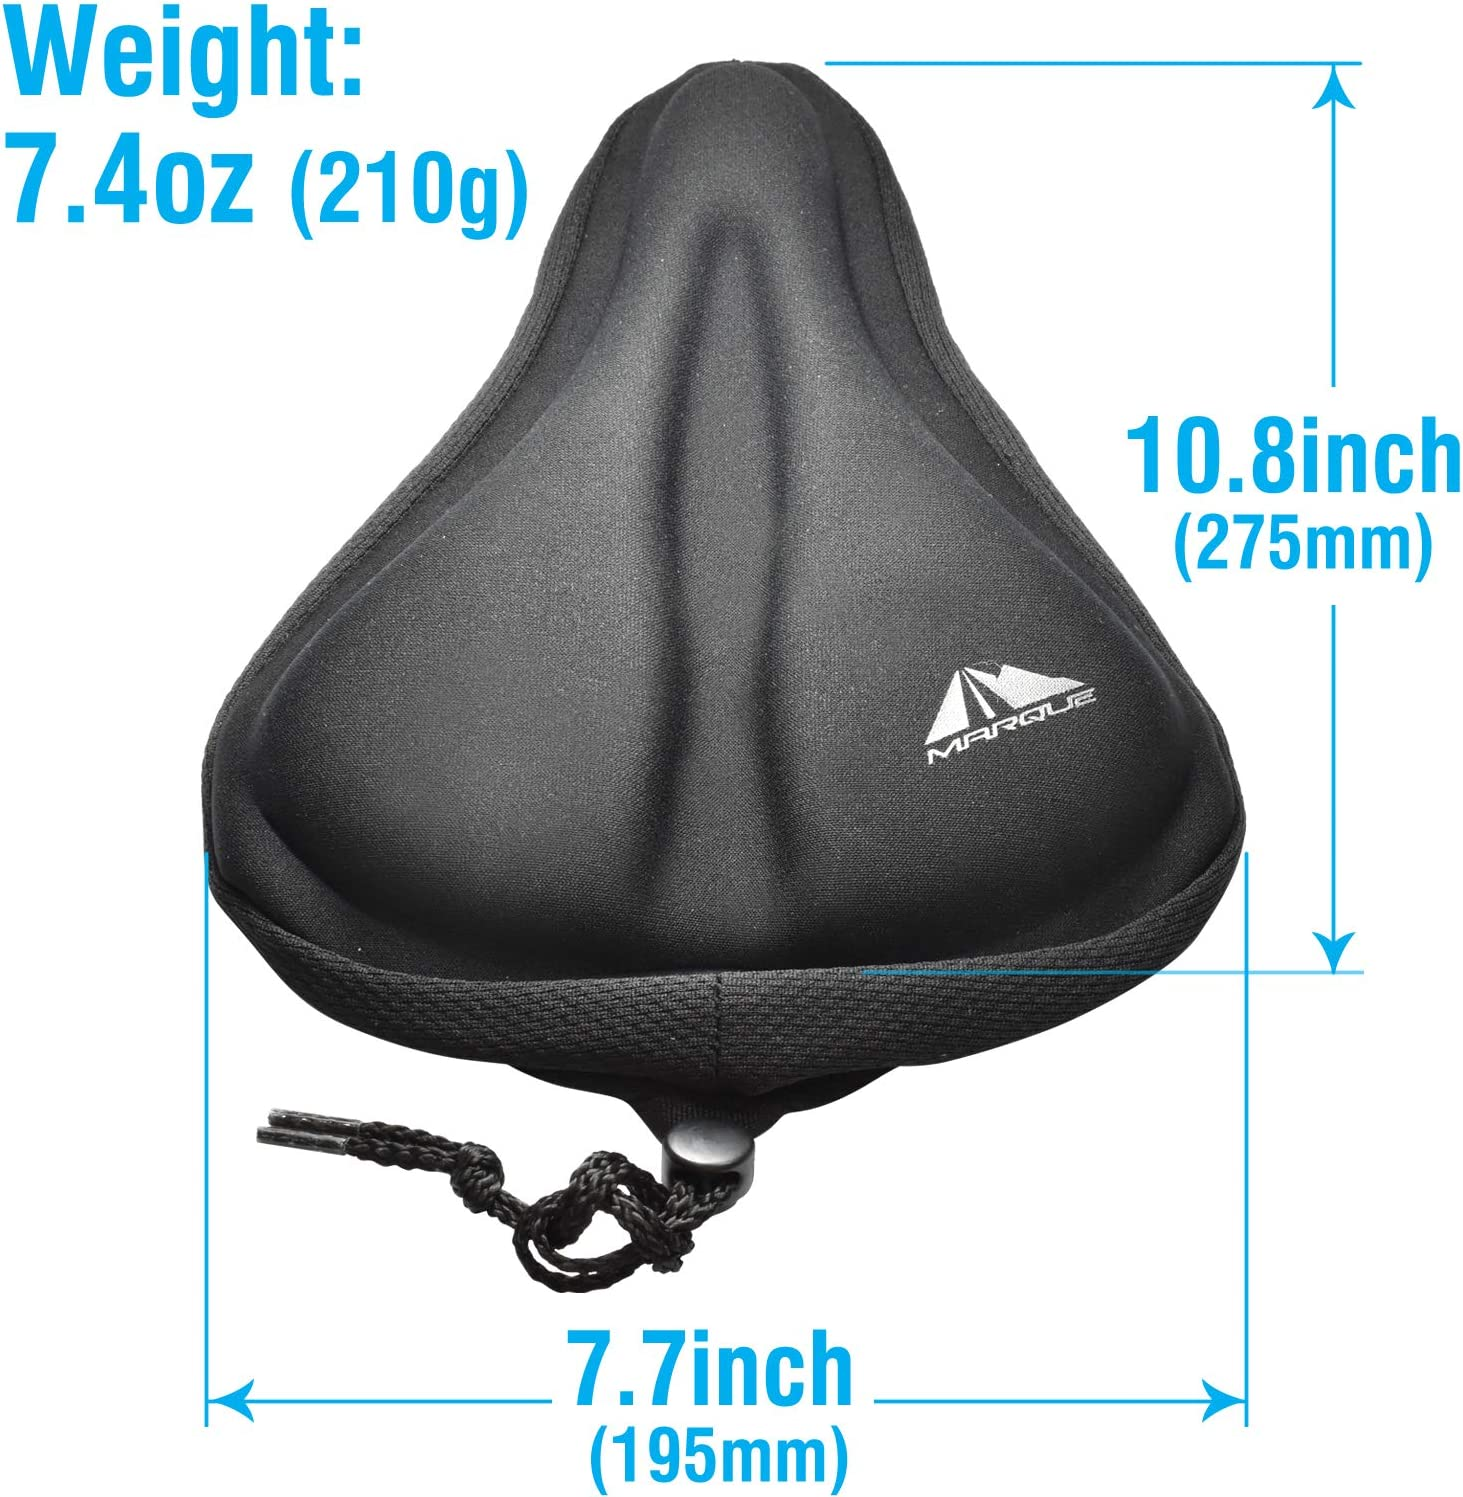 Soft Comfortable Padded Bicycle Saddle Cushion Cover for Outdoor MTB and Road Bikes and Indoor Stationary Exercise Peloton Seat Bike Seat Cushion Cover